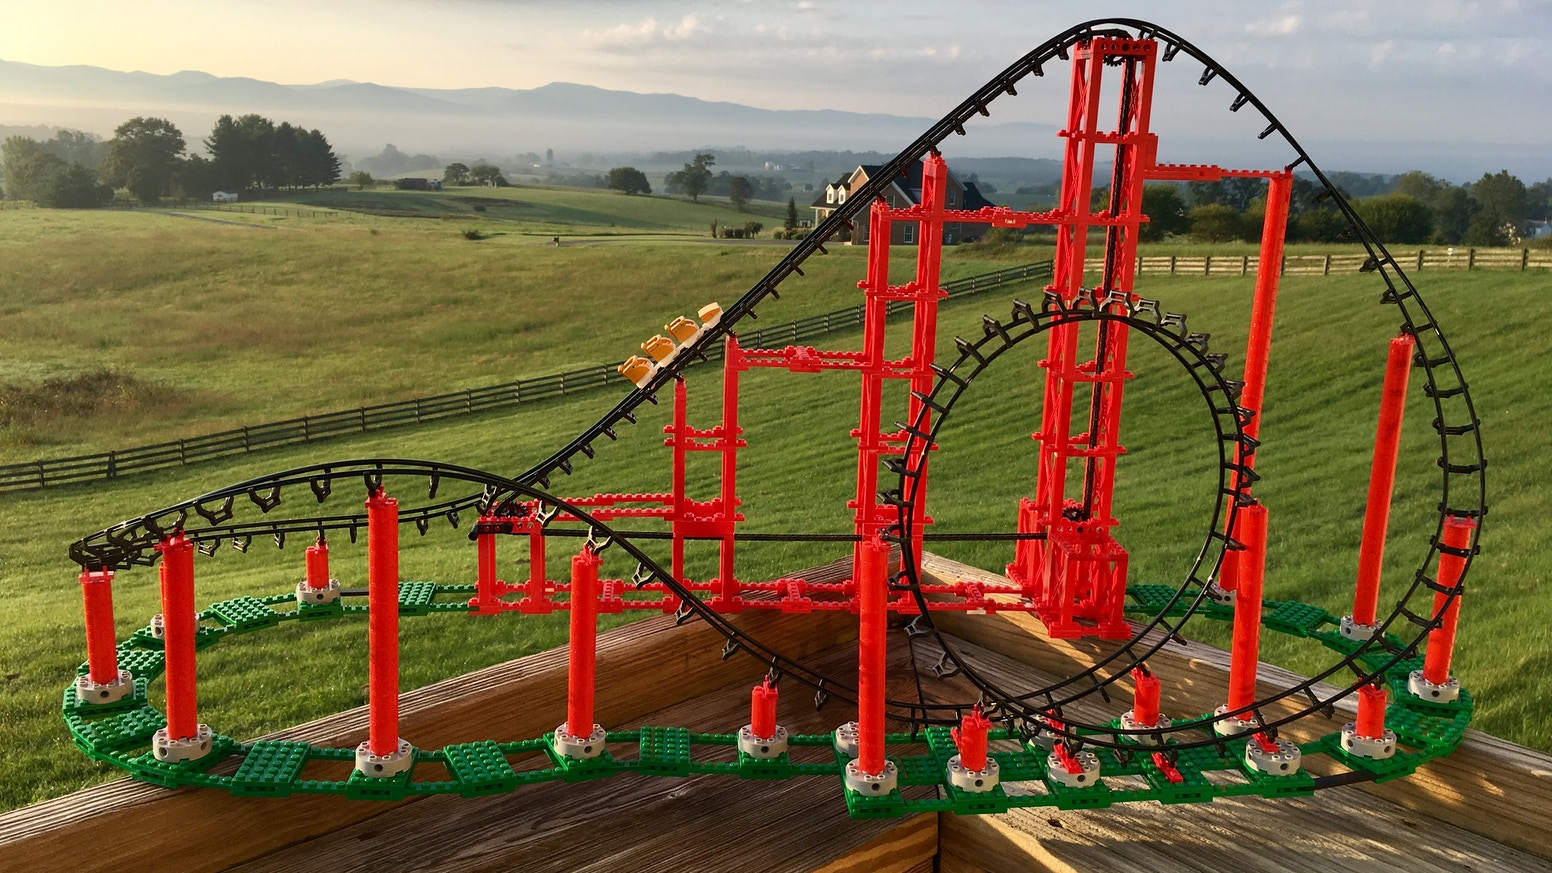 Working Roller Coaster Construction Toy